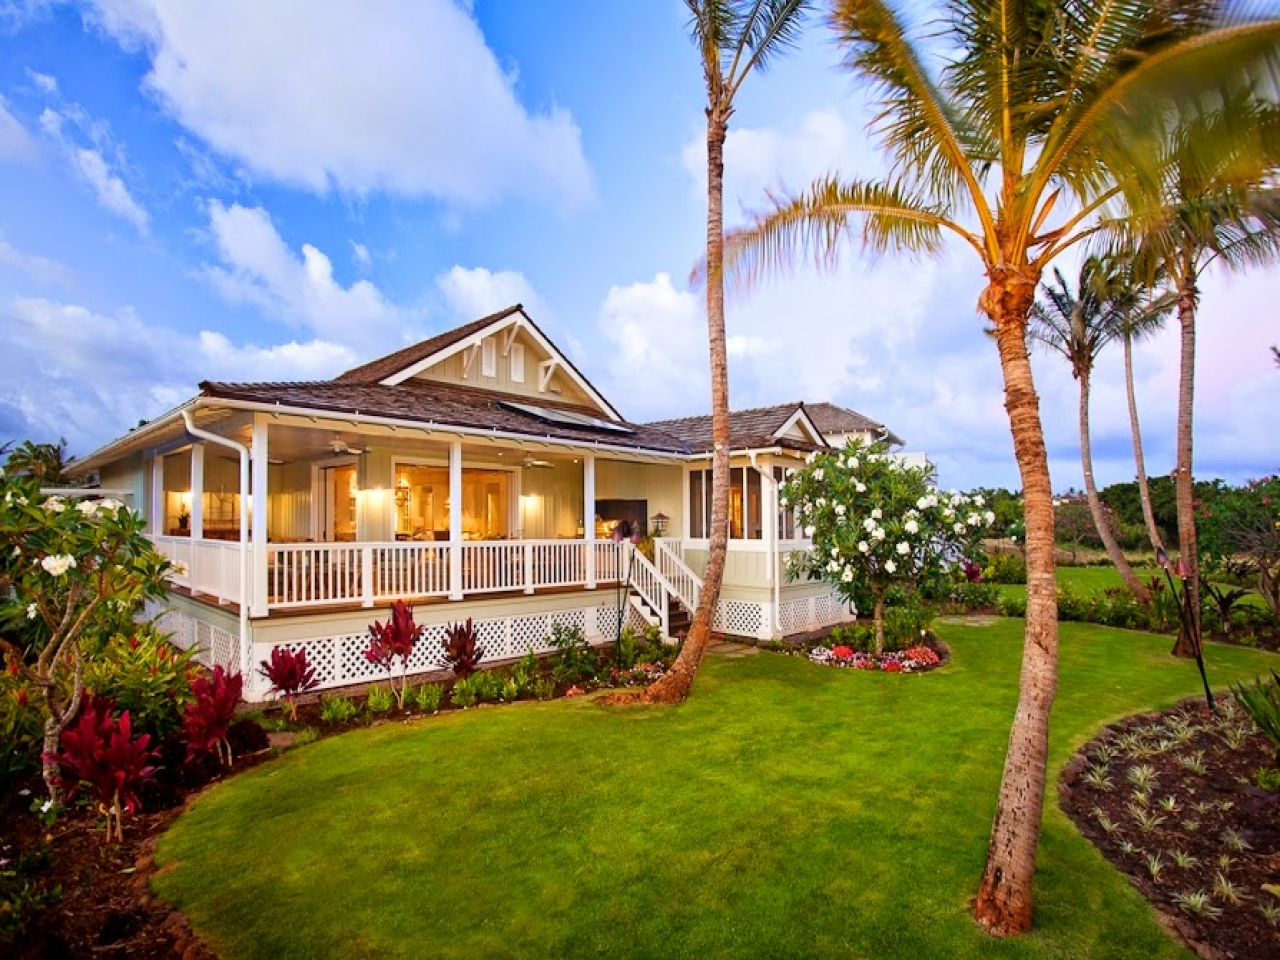 Hawaii House Plans Hawaiian Plantation Style House Plans Tropical Island